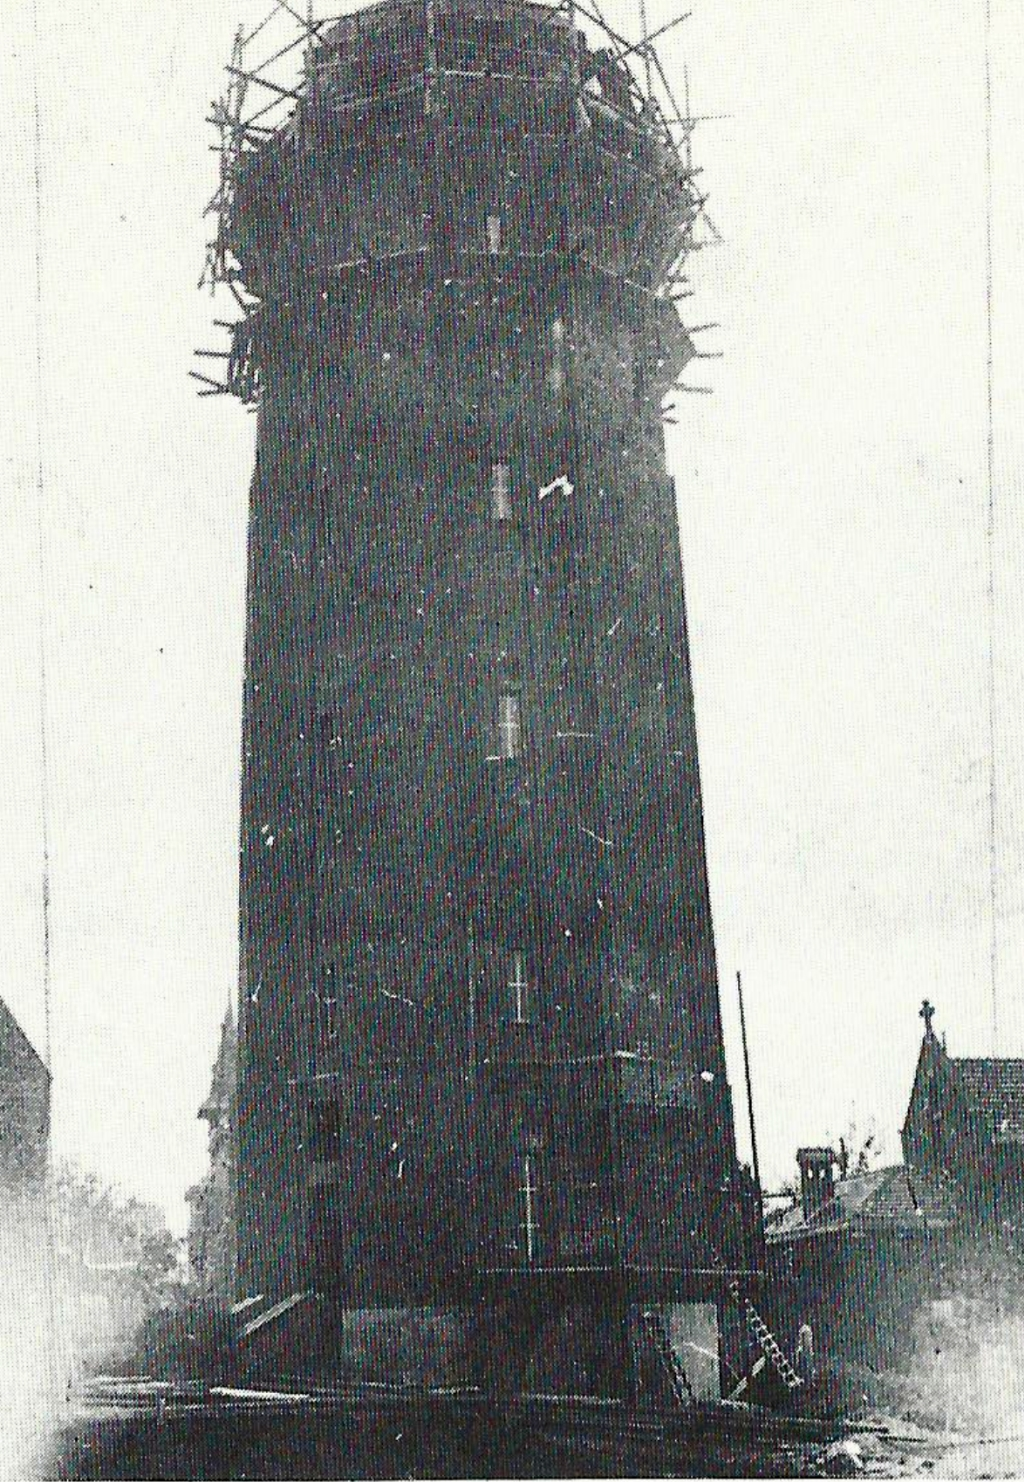 Construction of the water tower